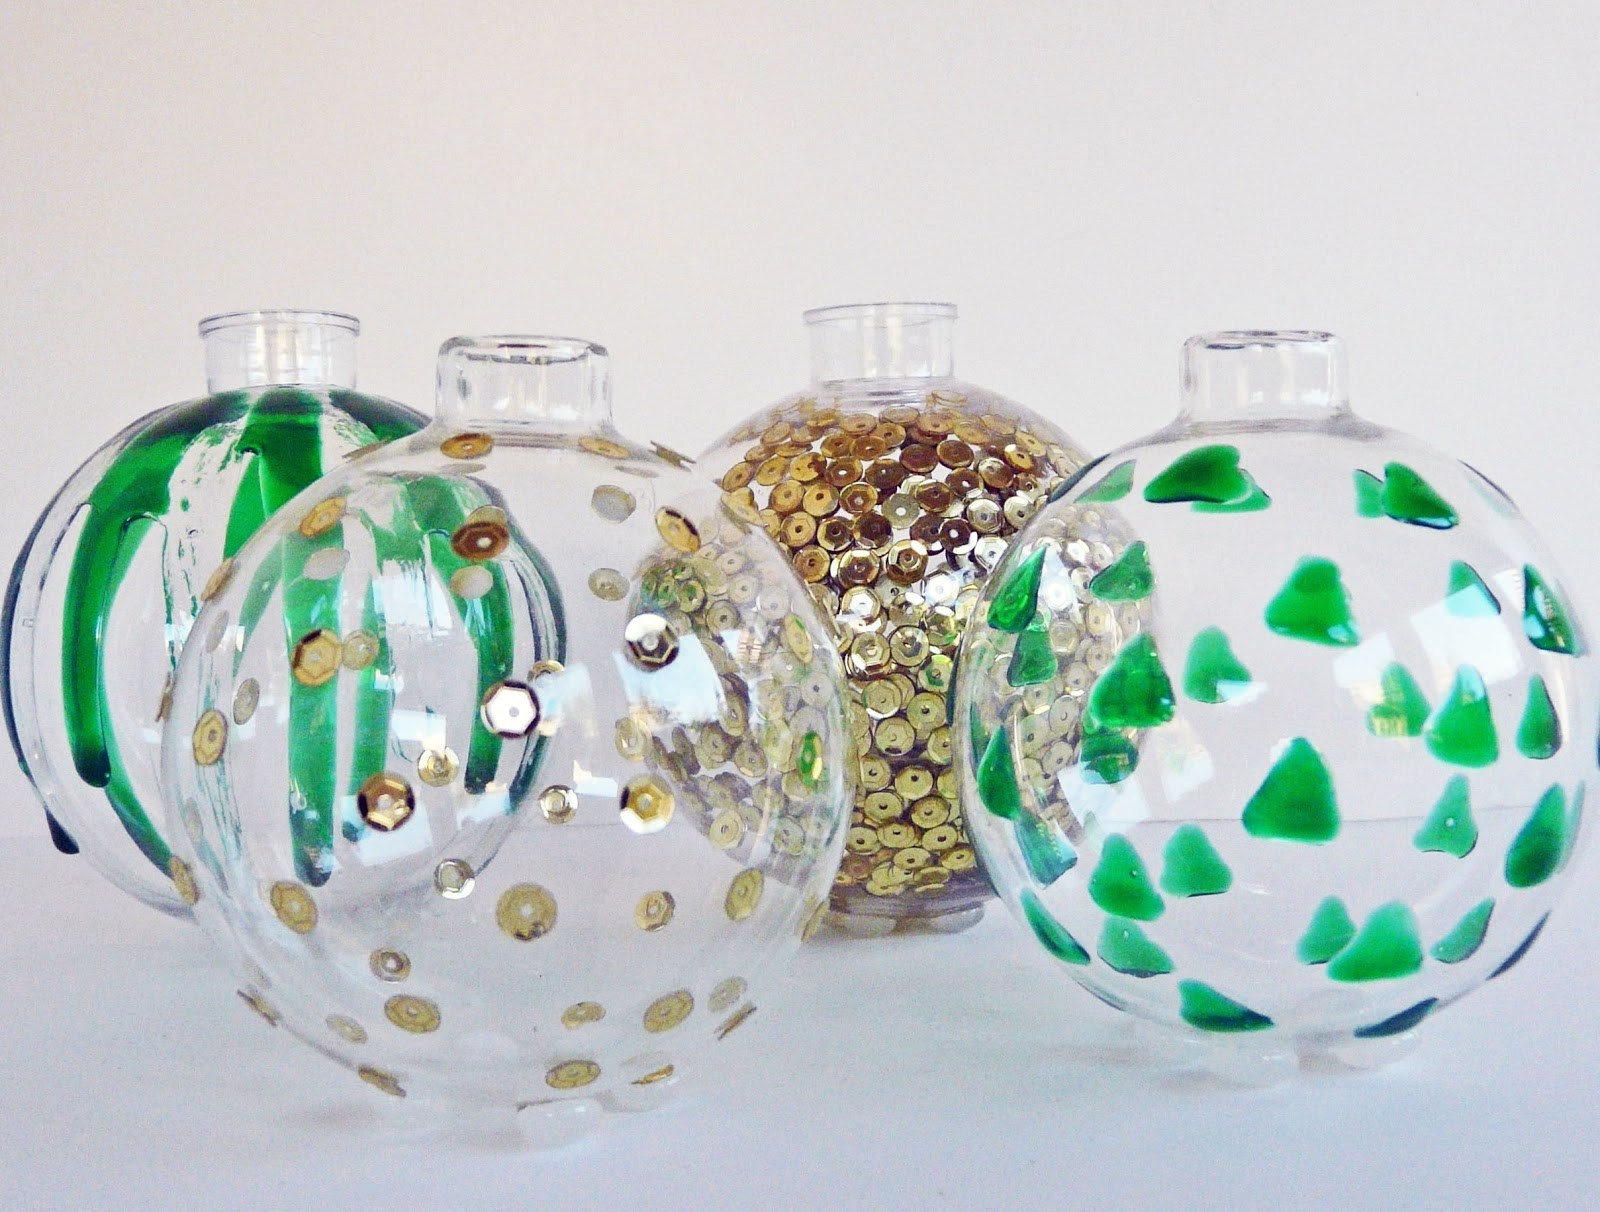 Glue for glass ornaments - The Great Thing About These Vases Is That They Can Easily Become Ornaments Again Just Pop On The Top I Don T Think I Would Even Bother Removing The Feet